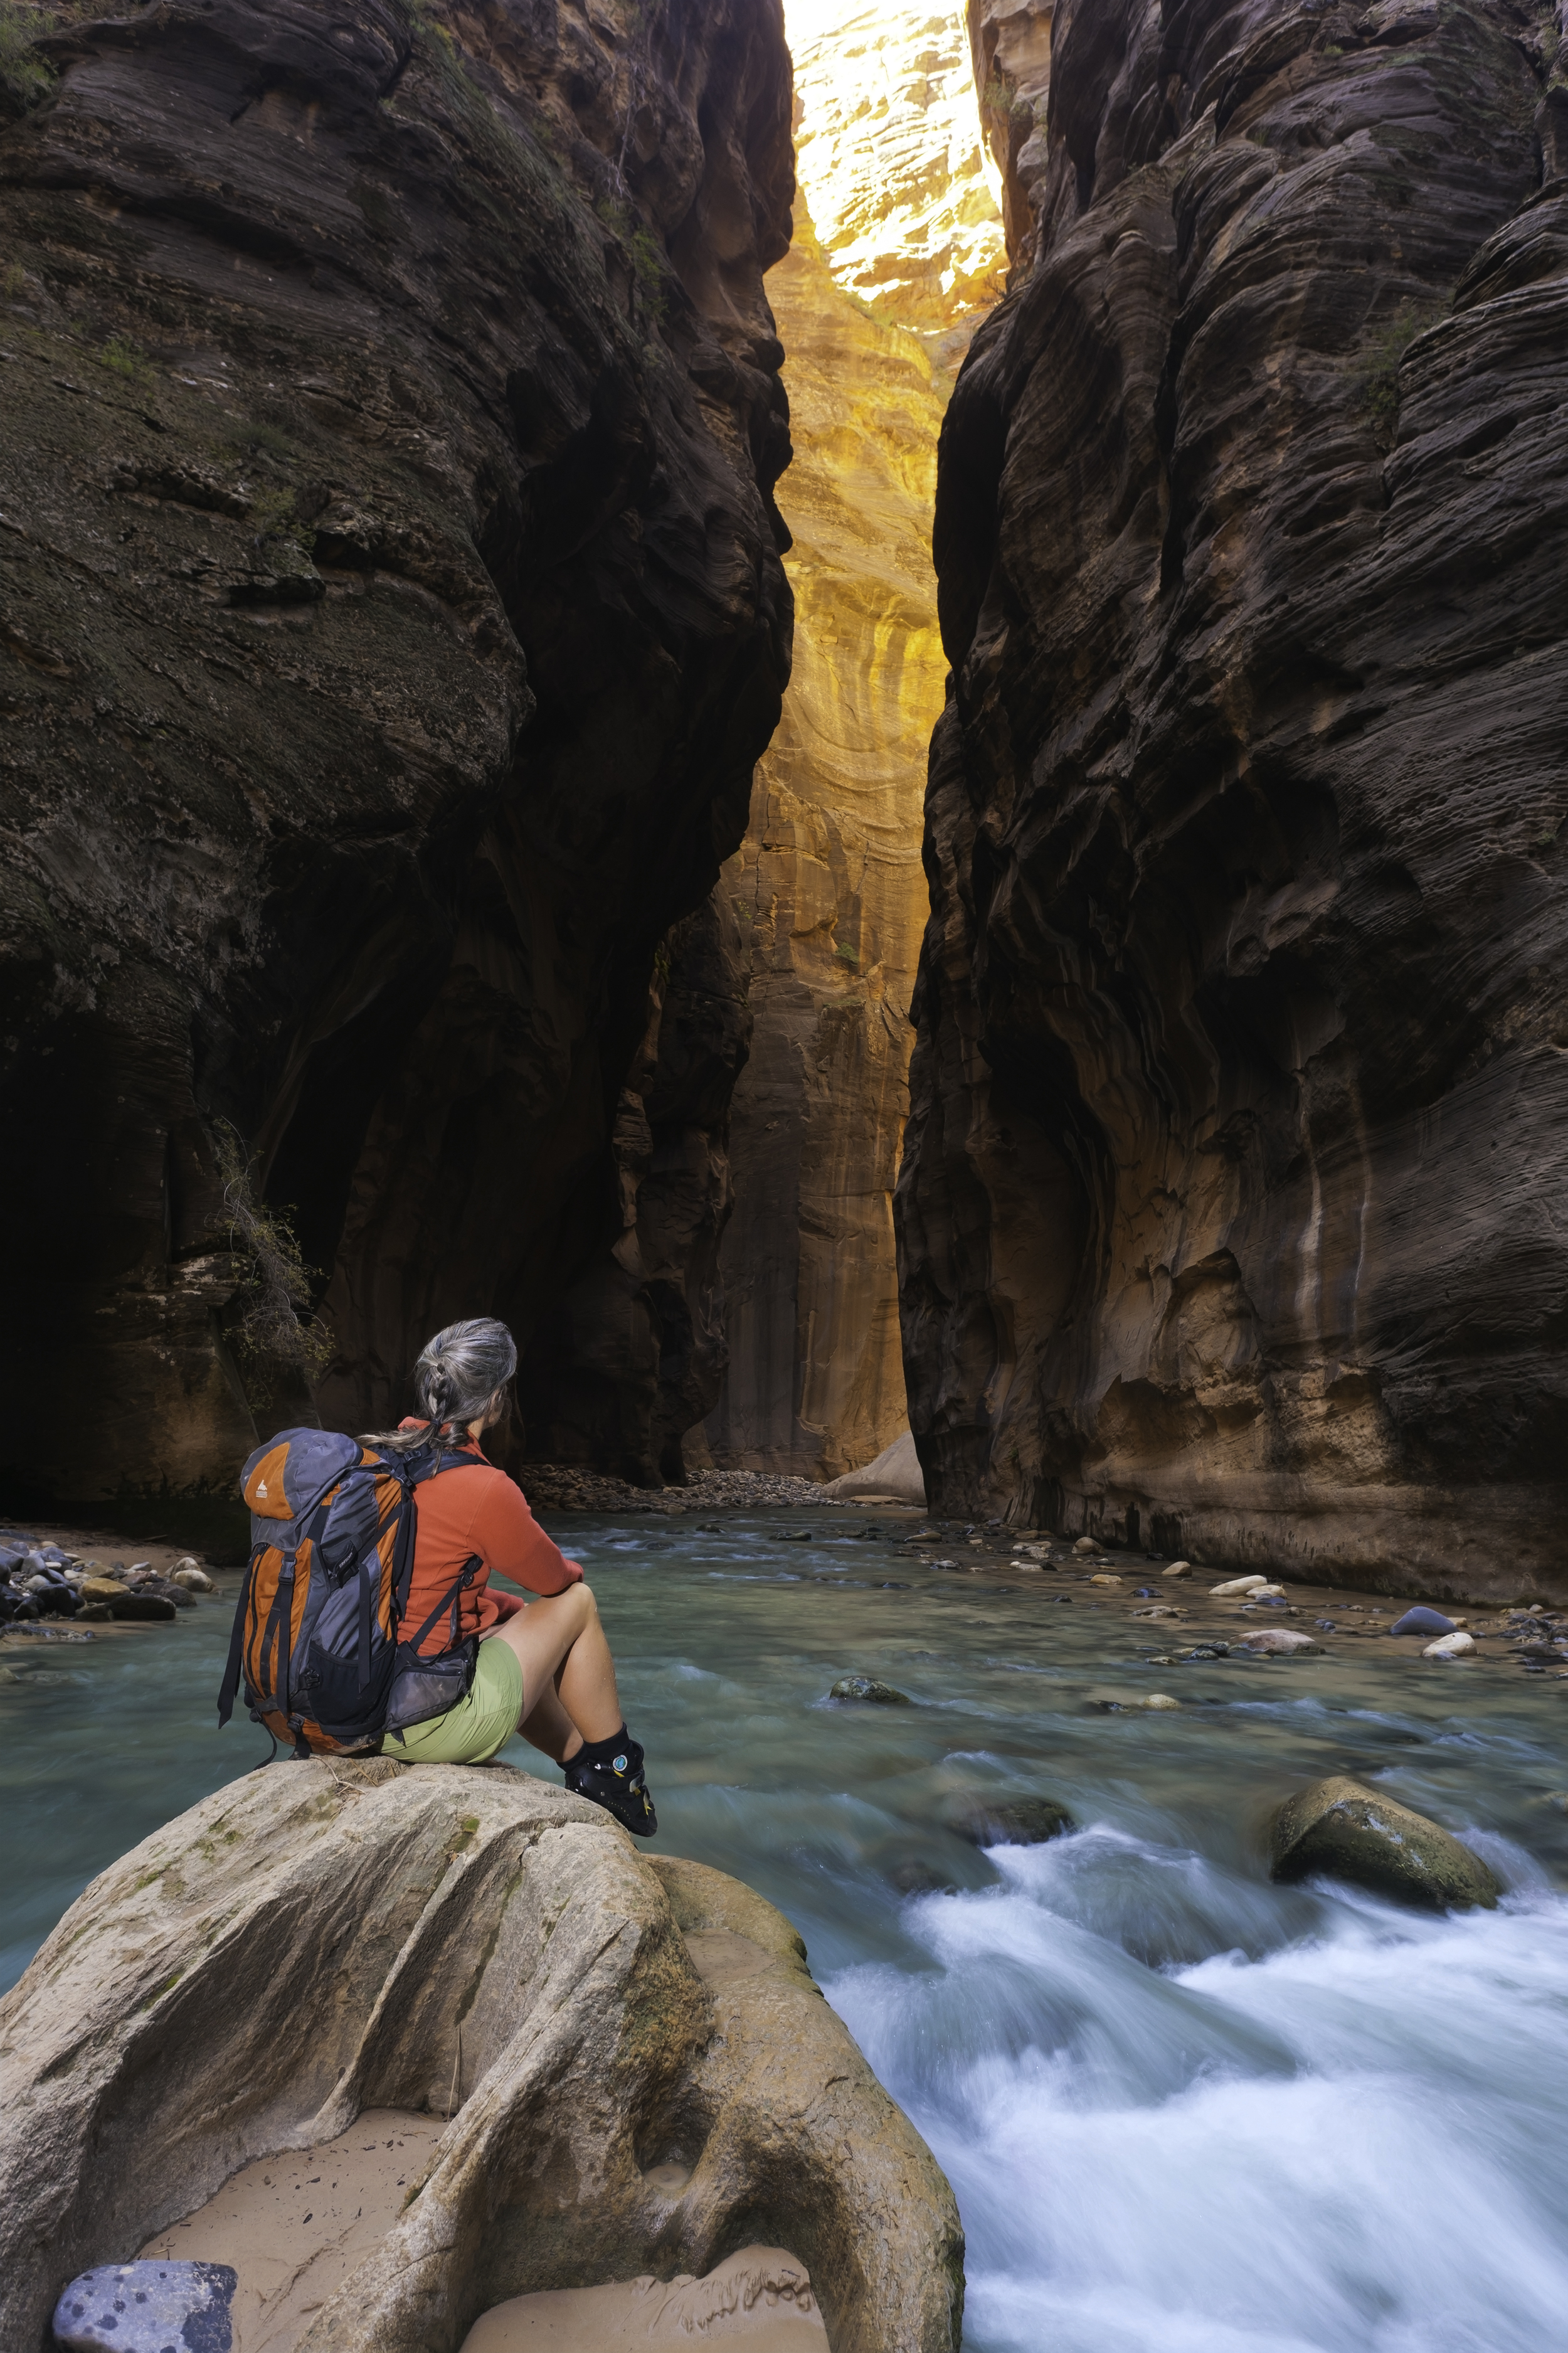 A hiker contemplates the beauty of the Zion Narrows.